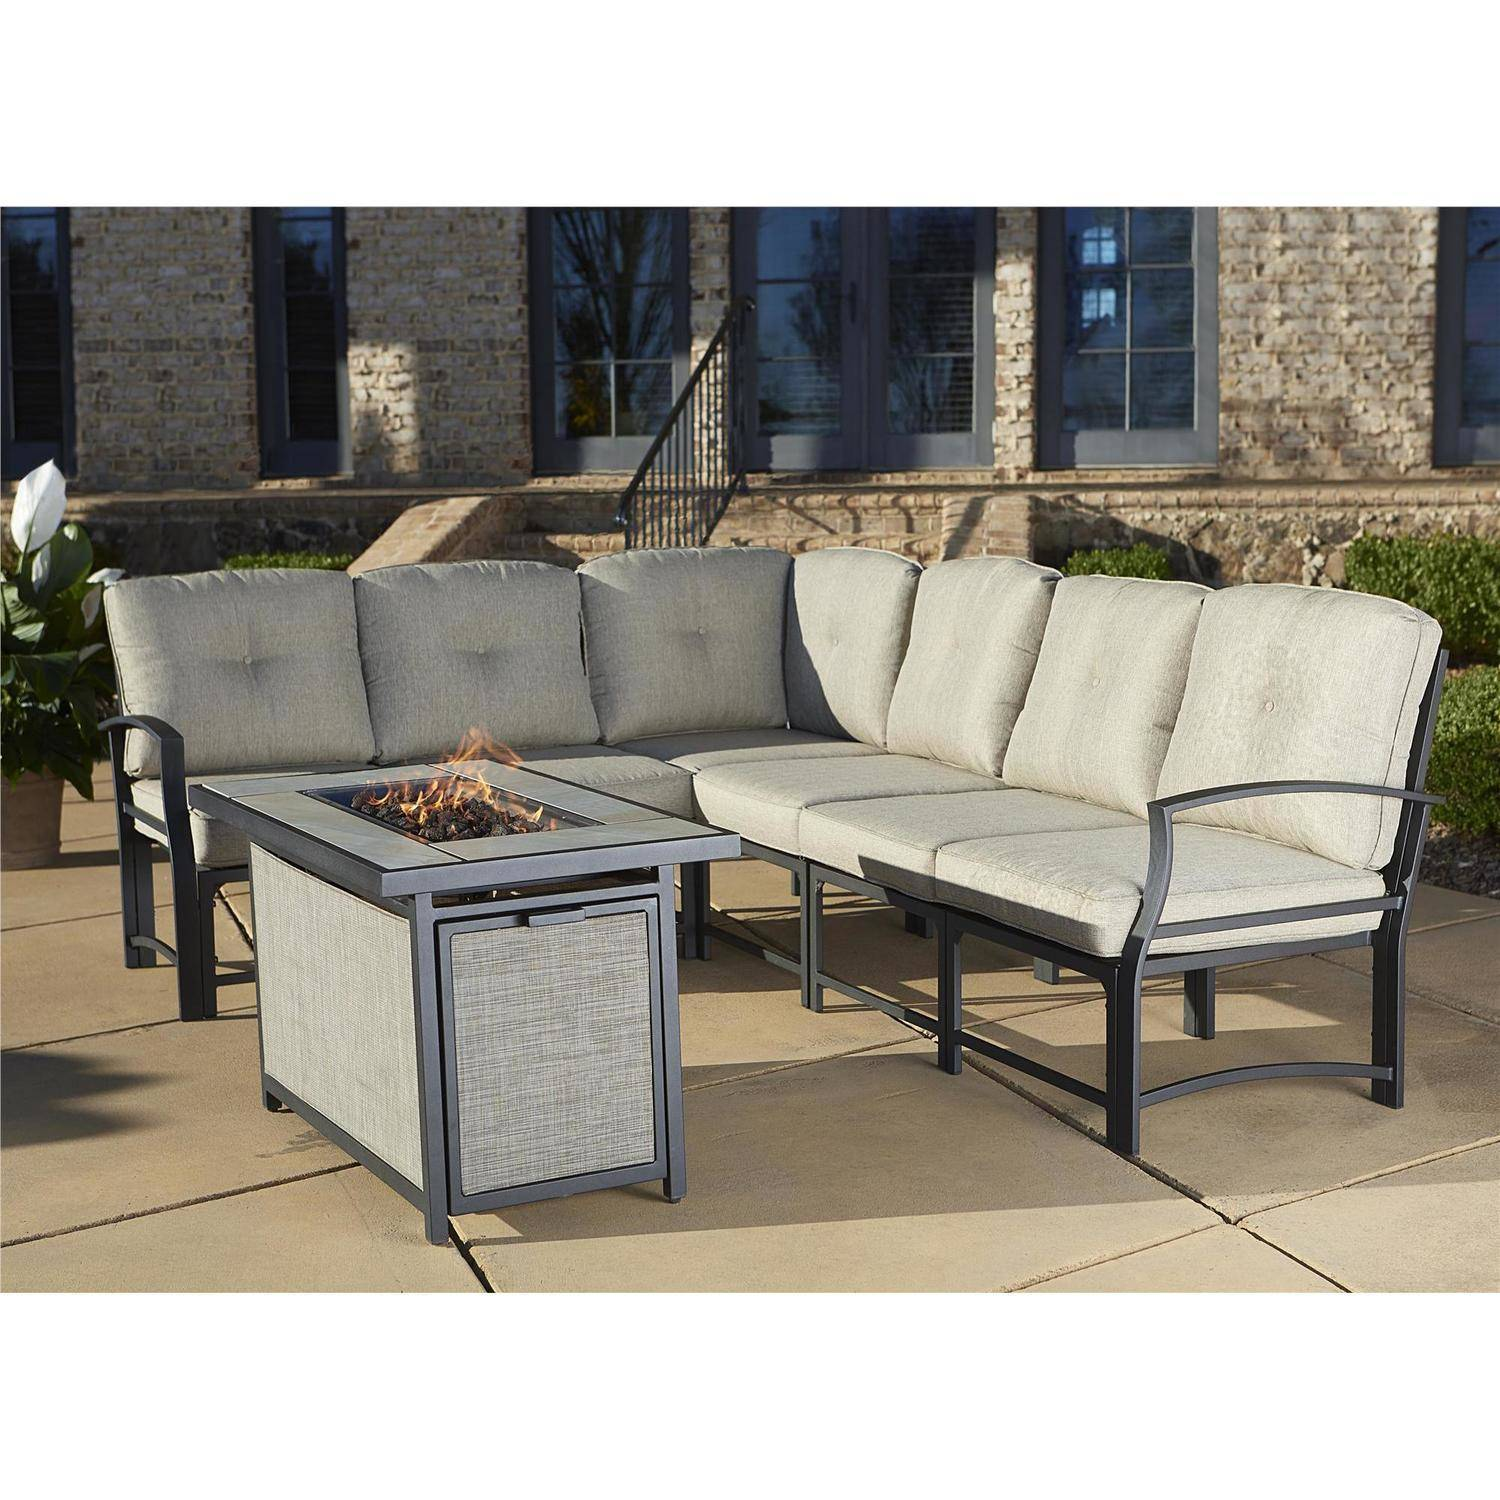 Cosco Outdoor Serene Ridge Aluminum Propane Gas Fire Pit Table With - Outdoor furniture with gas fire pit table